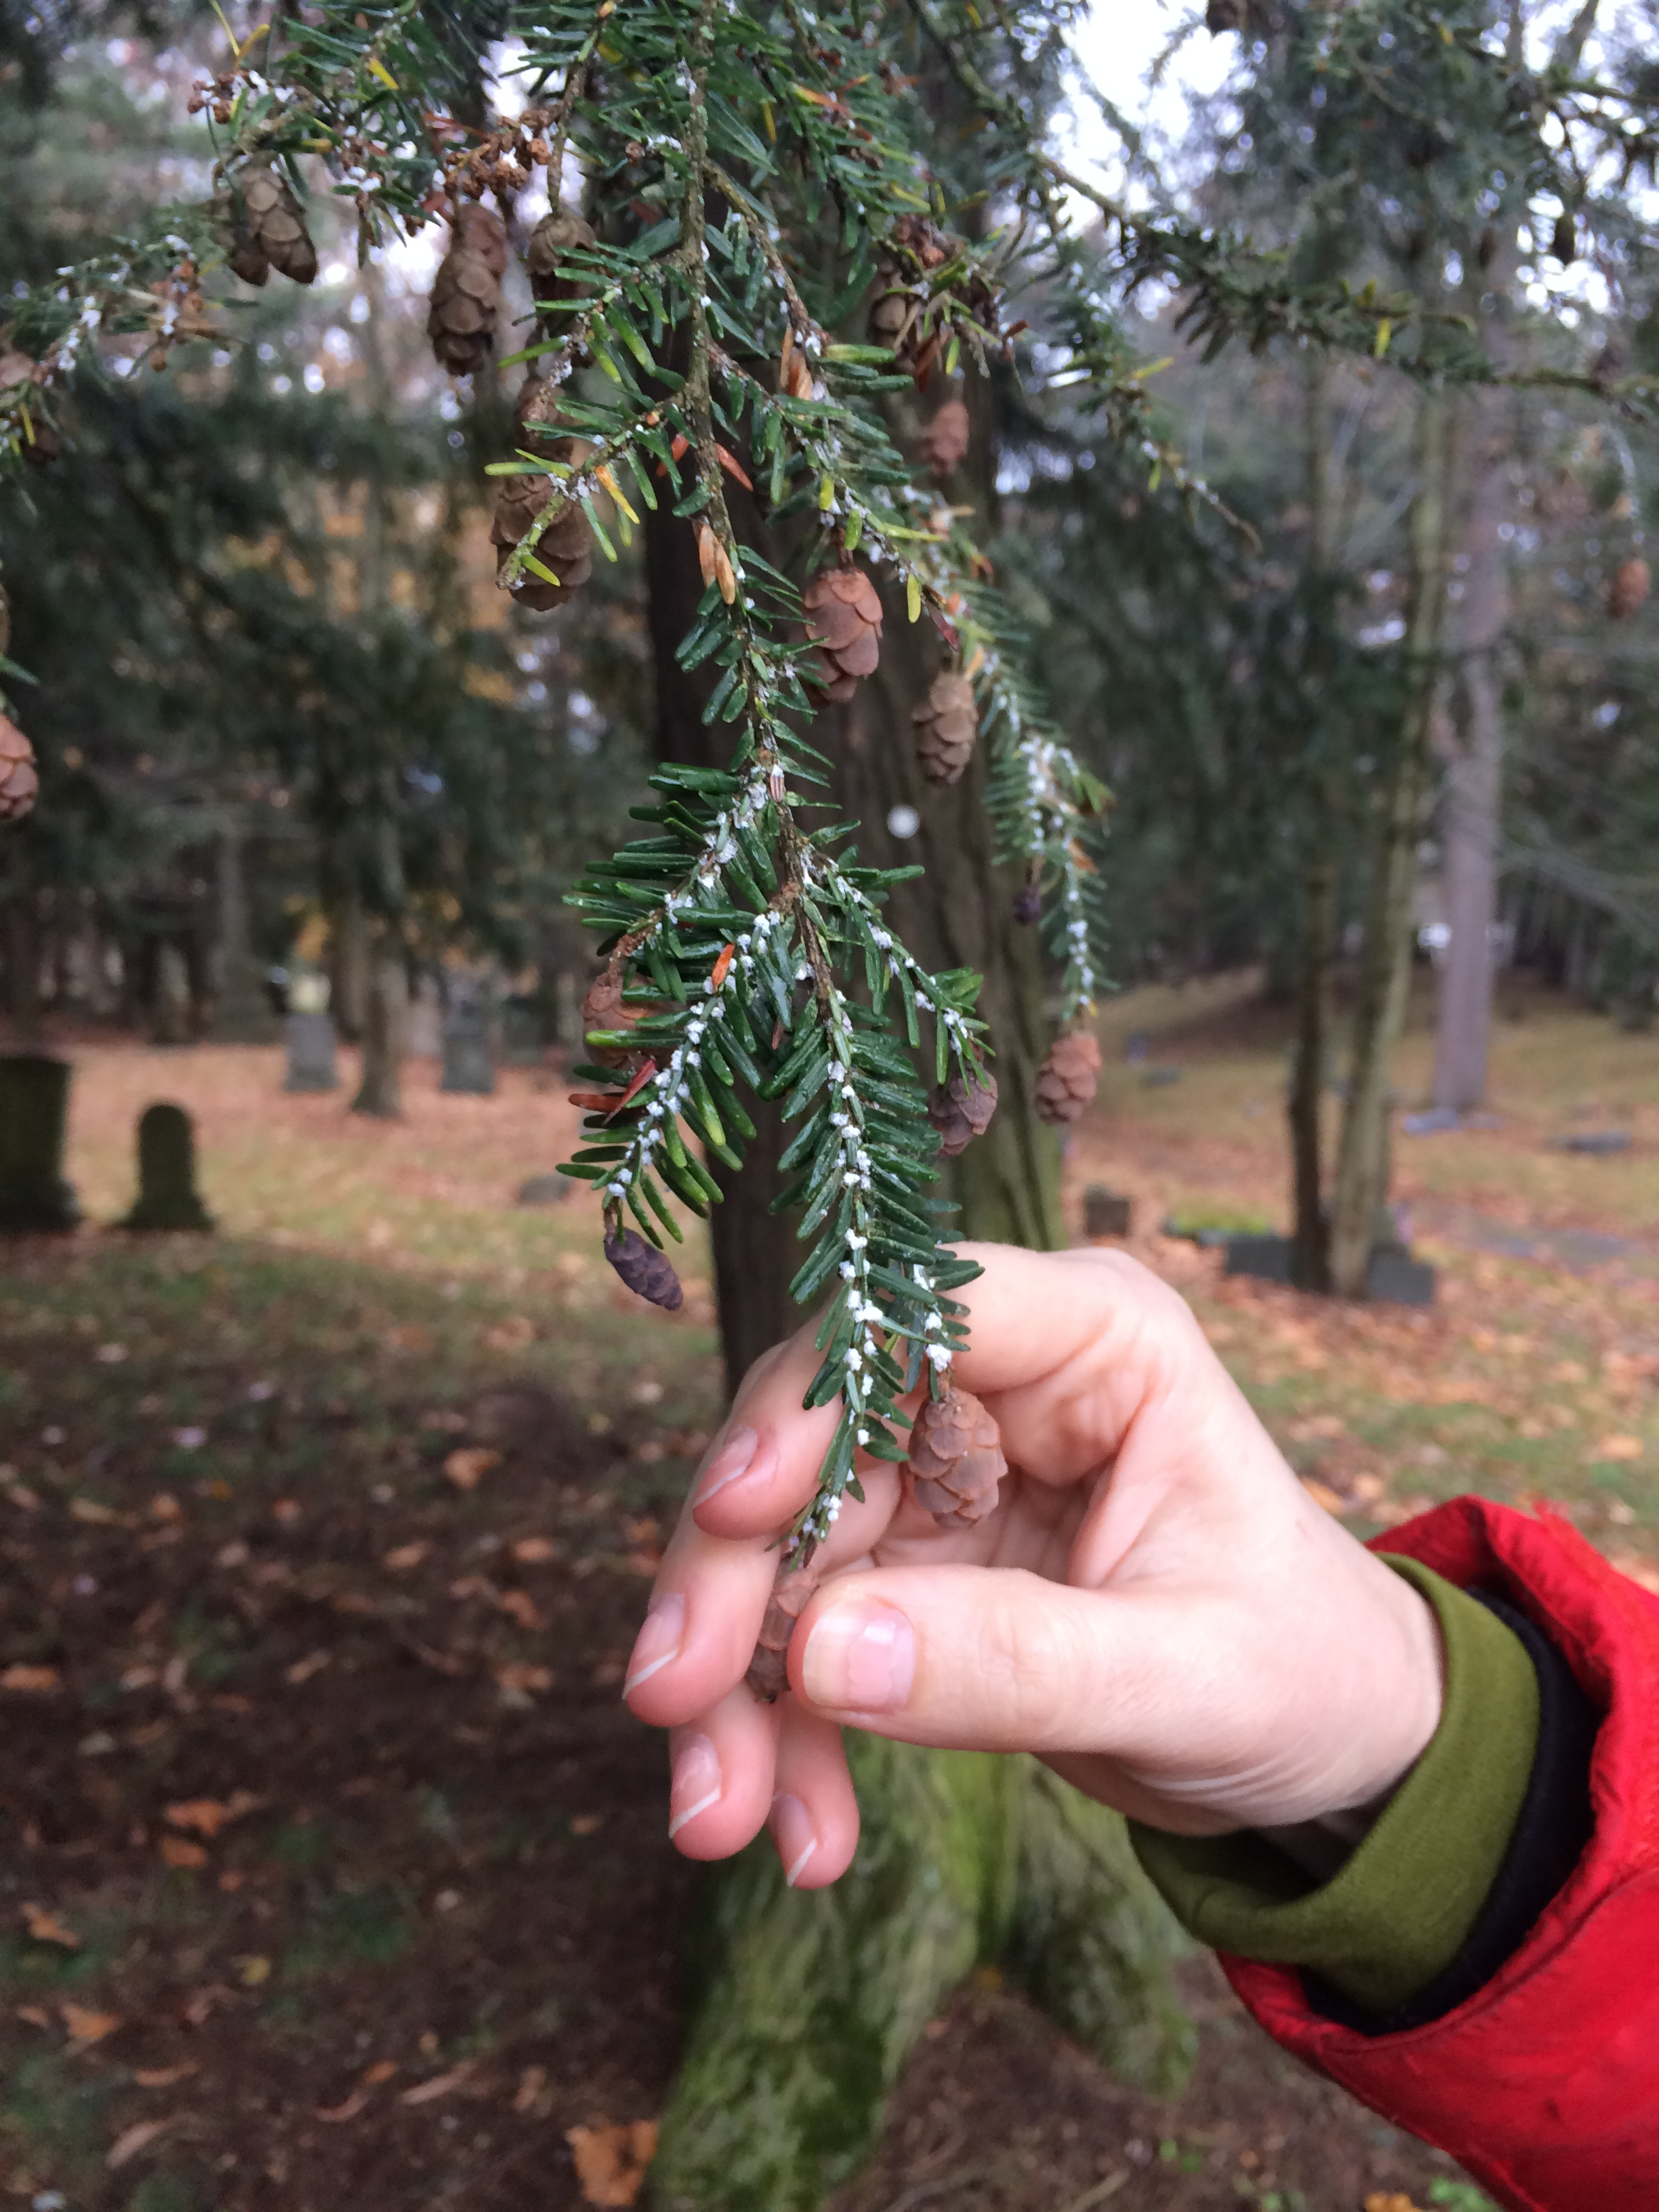 Caption: White fuzz on branches harbors the destructive hemlock woolly adelgid., Credit: Caitlin Whyte